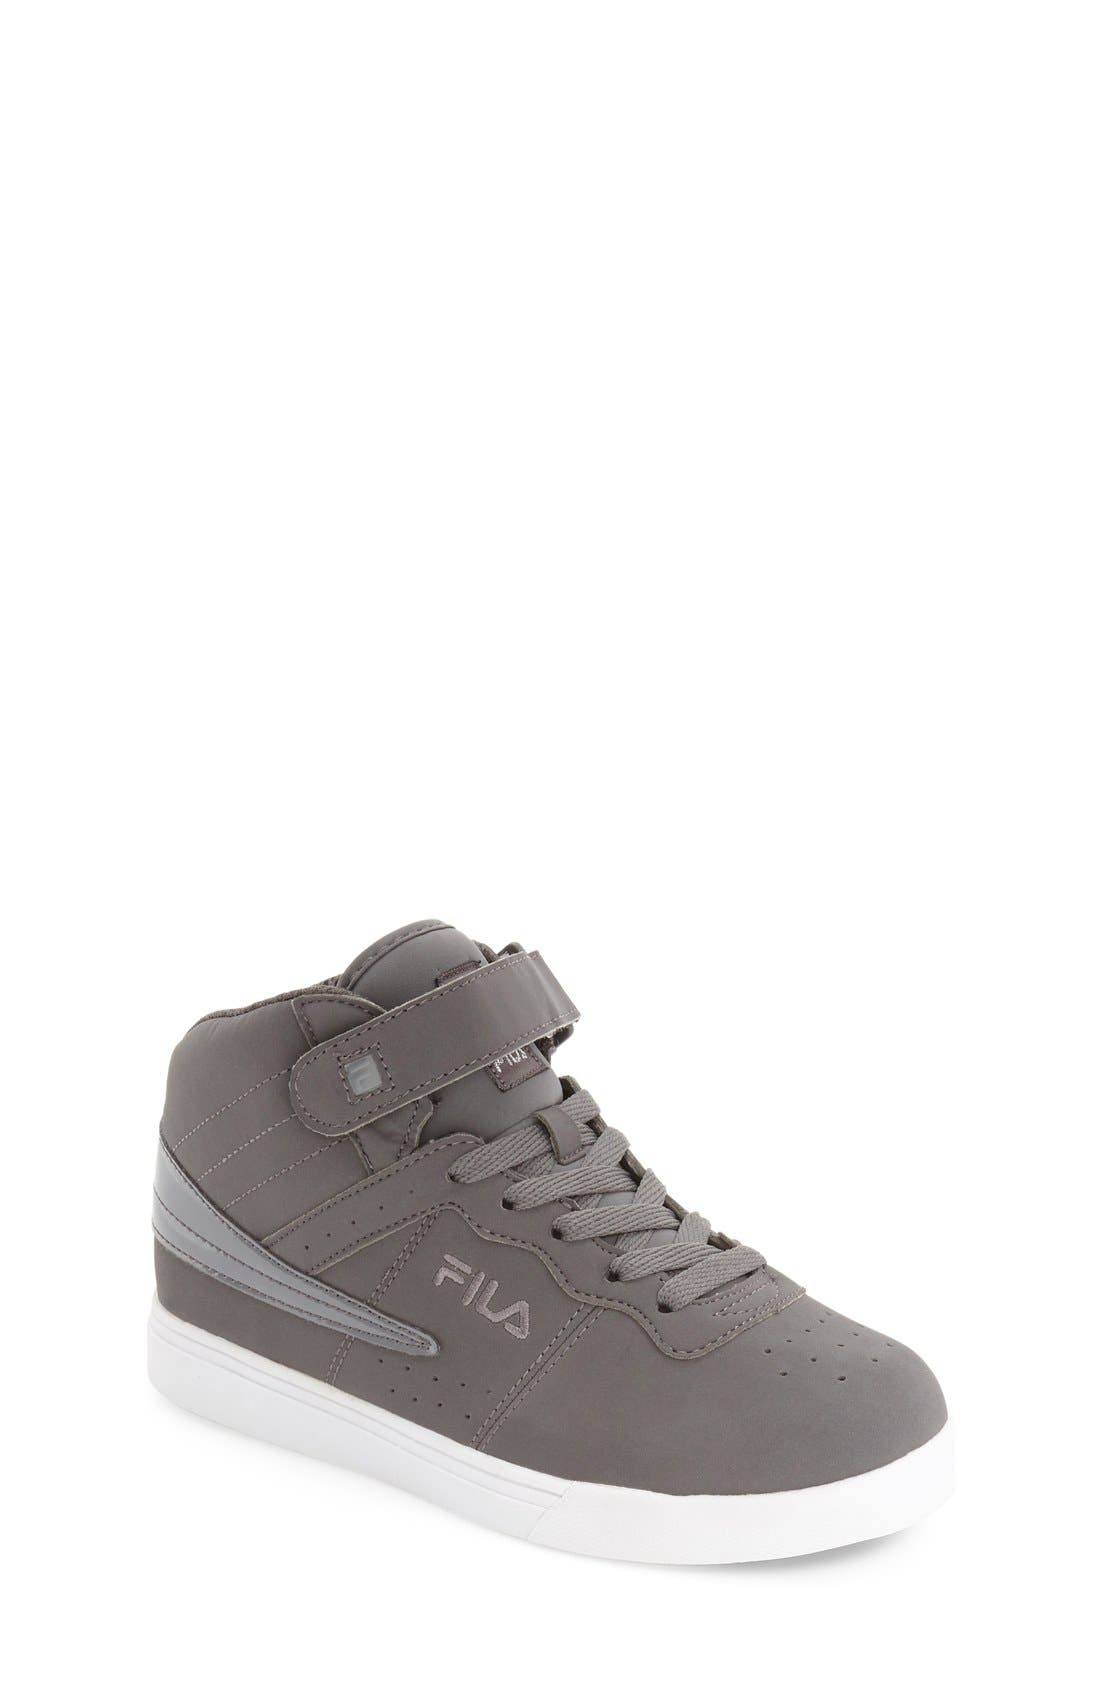 Vulc 13 High Top Sneaker,                         Main,                         color, Pewter/ White